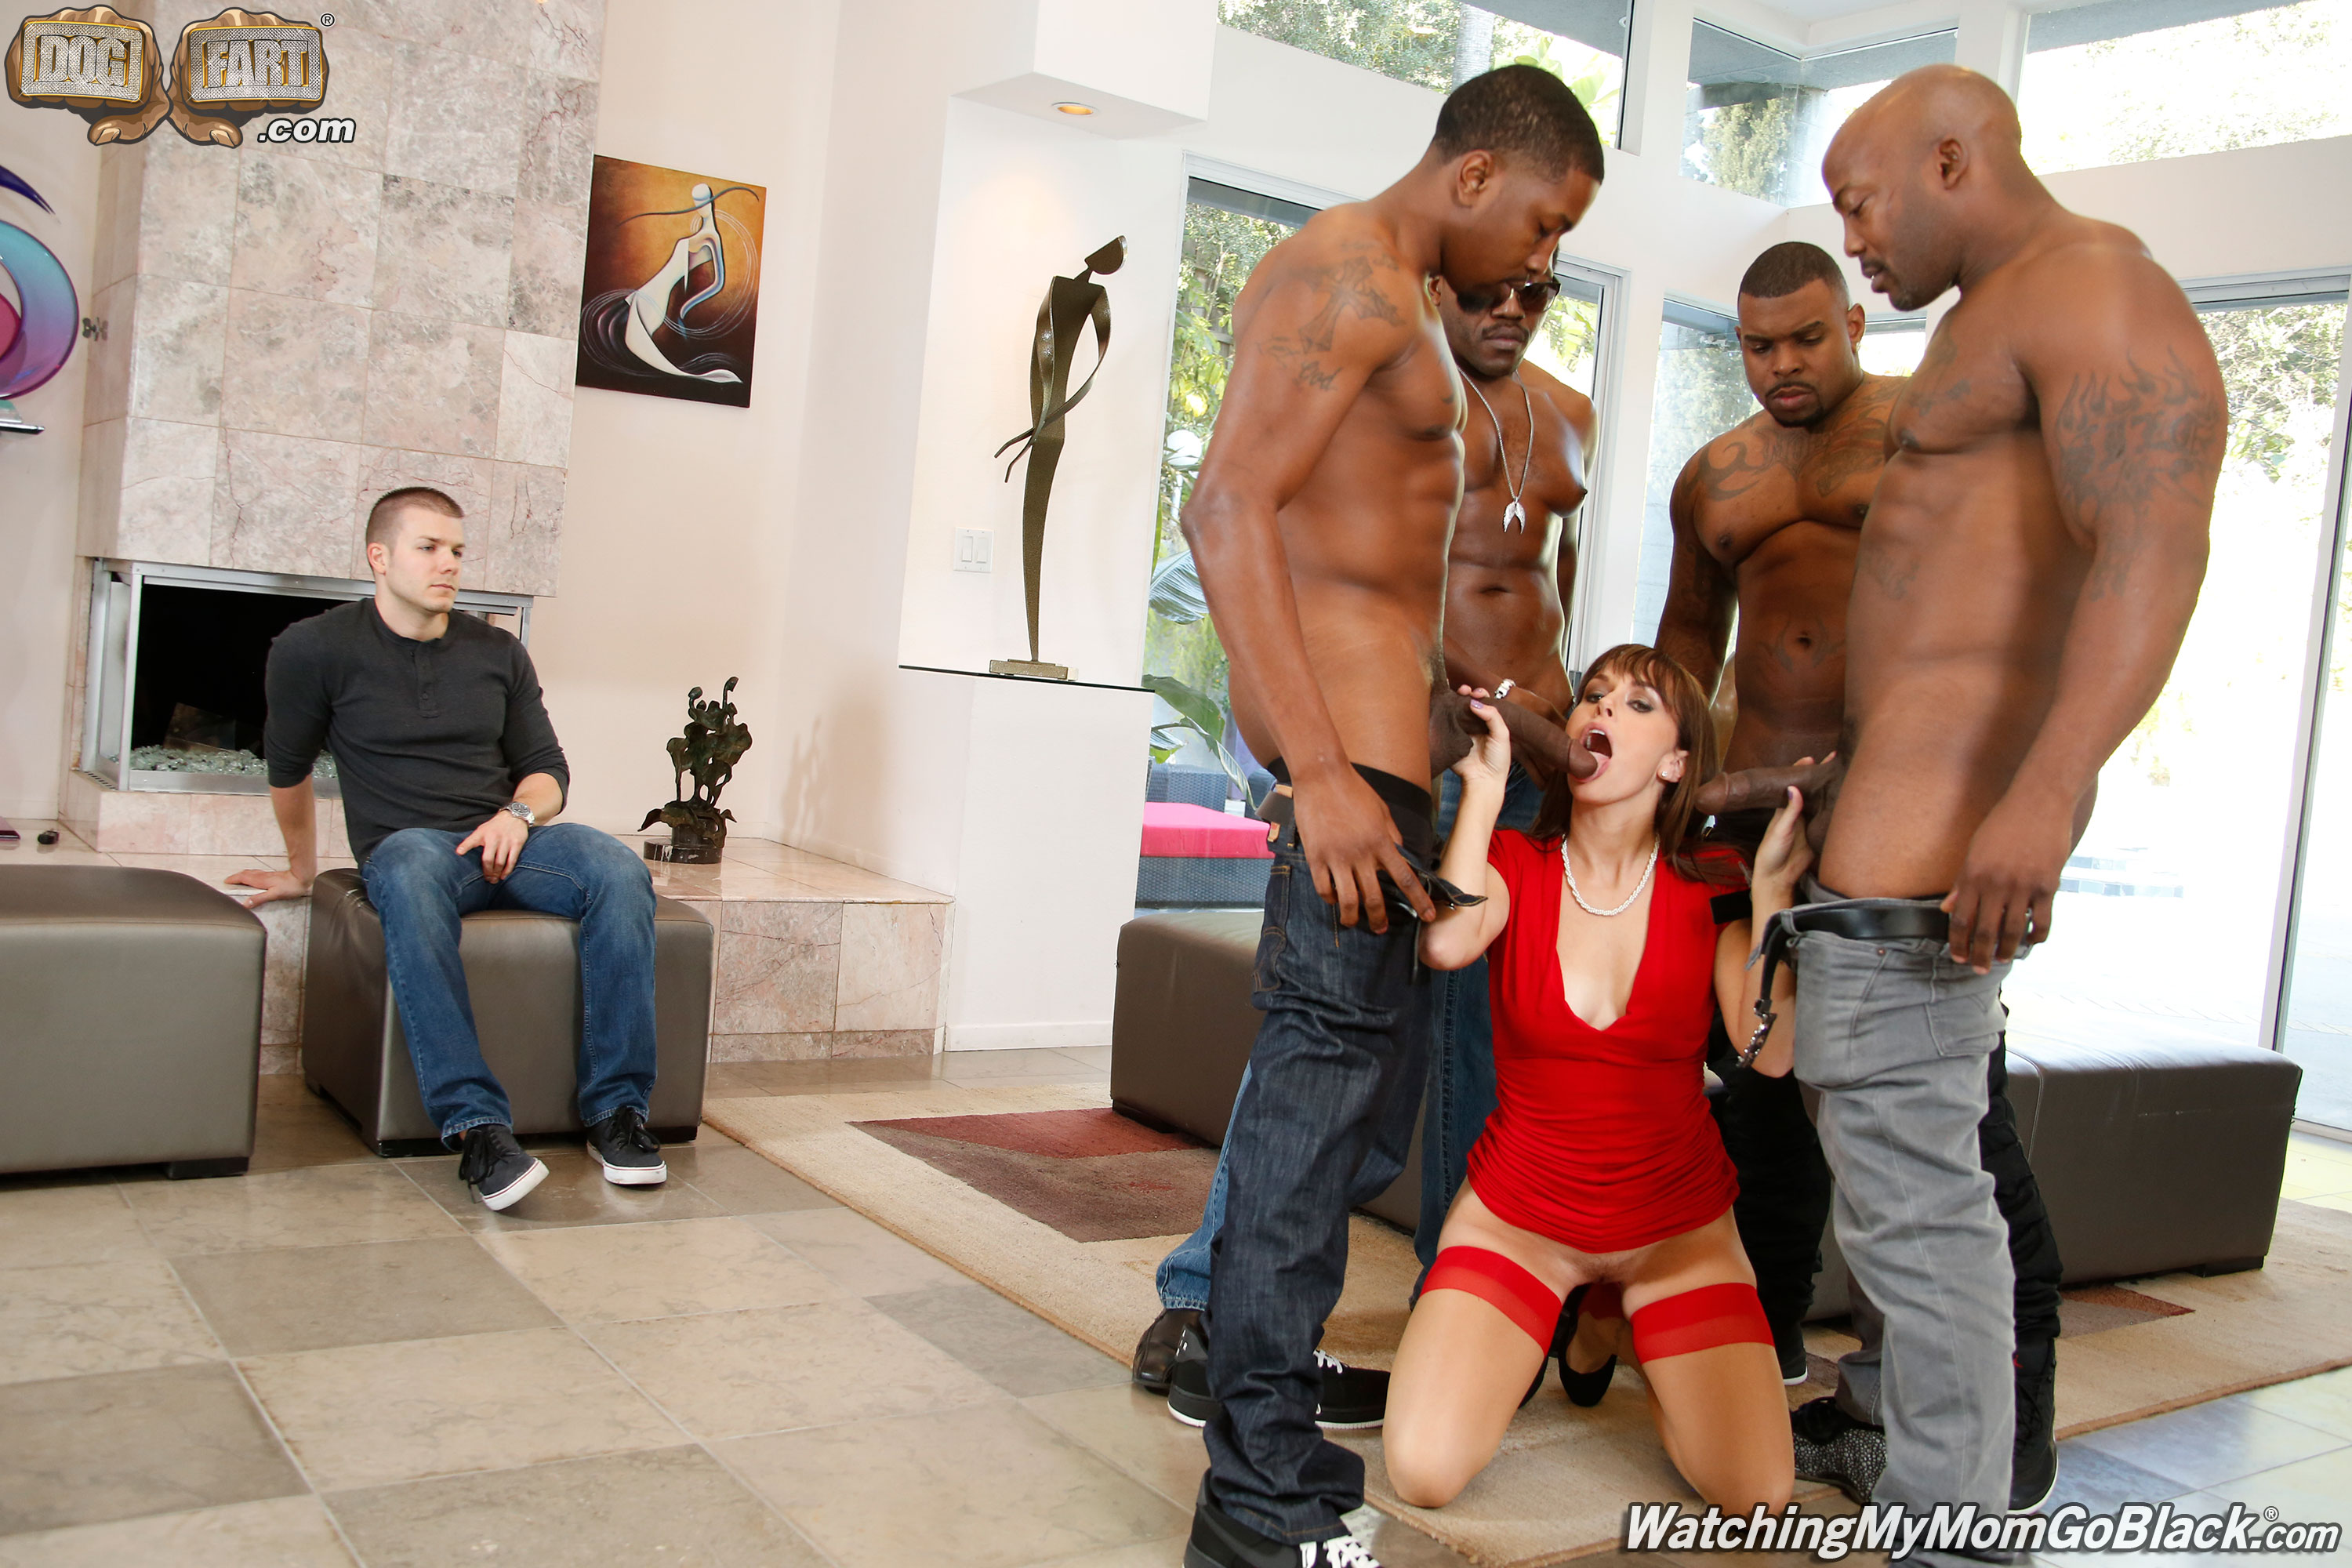 image Alana cruise invites black men for some double penetration